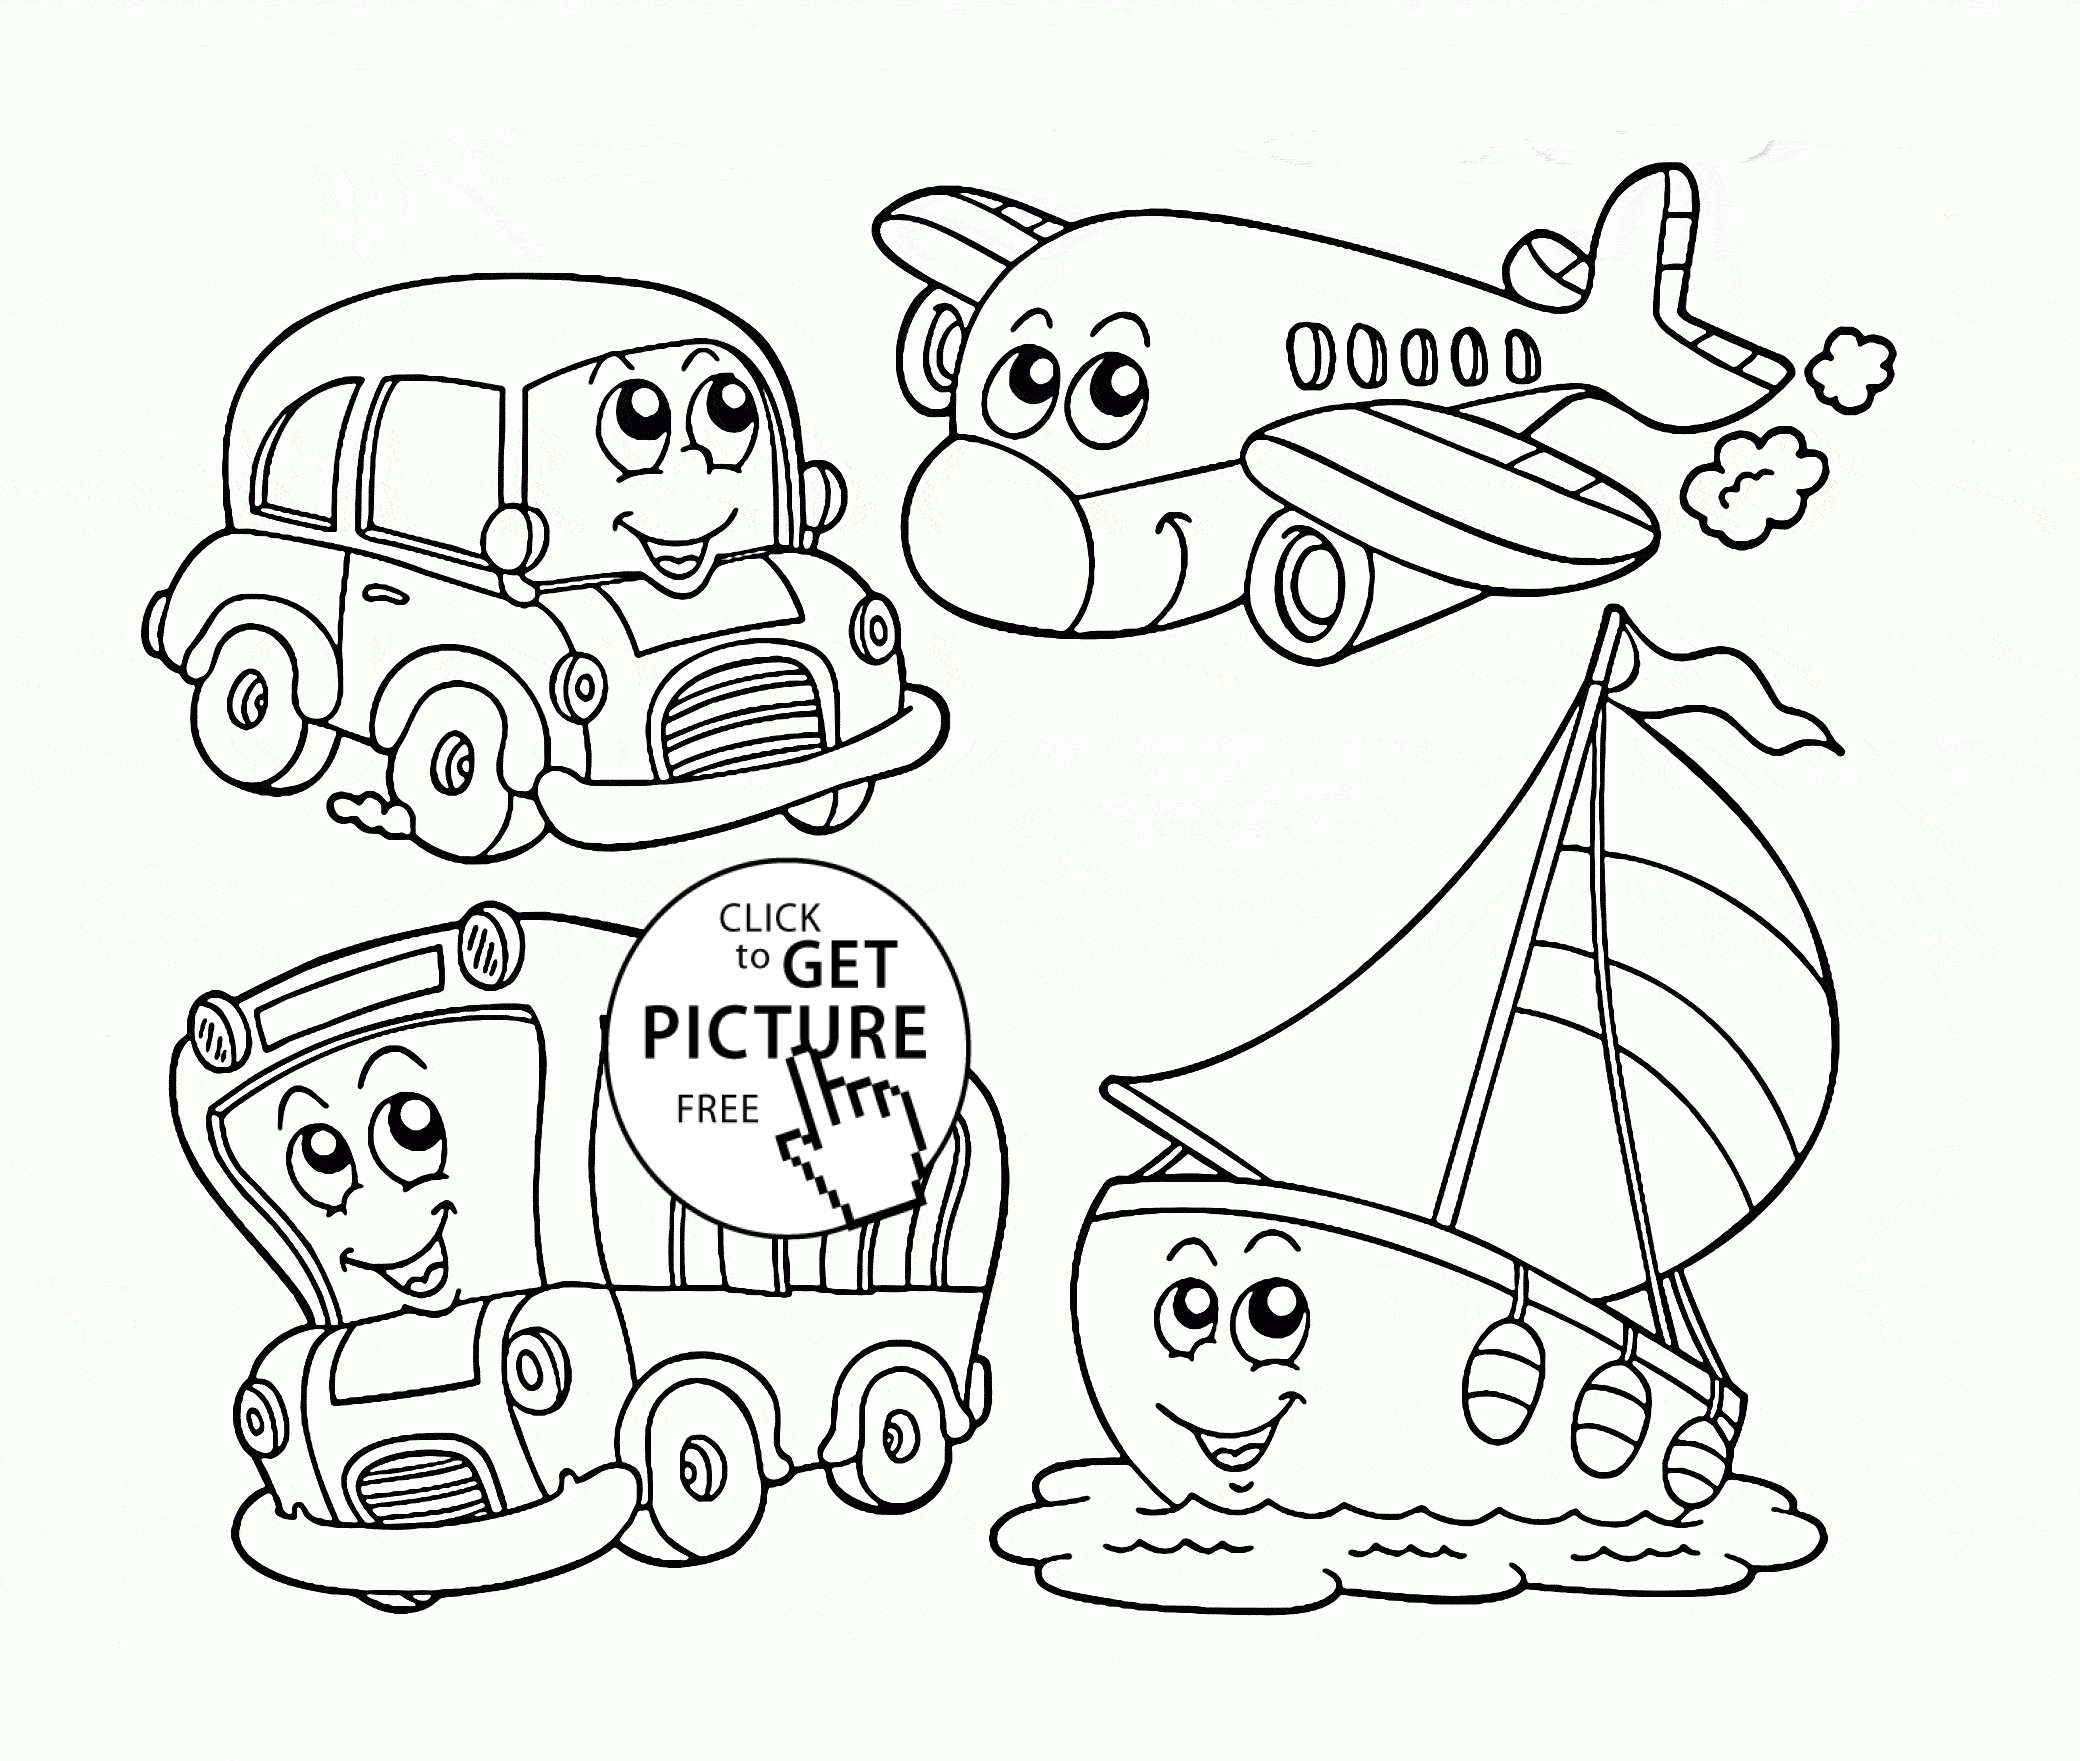 Water Transportation Coloring Pages At Getdrawings